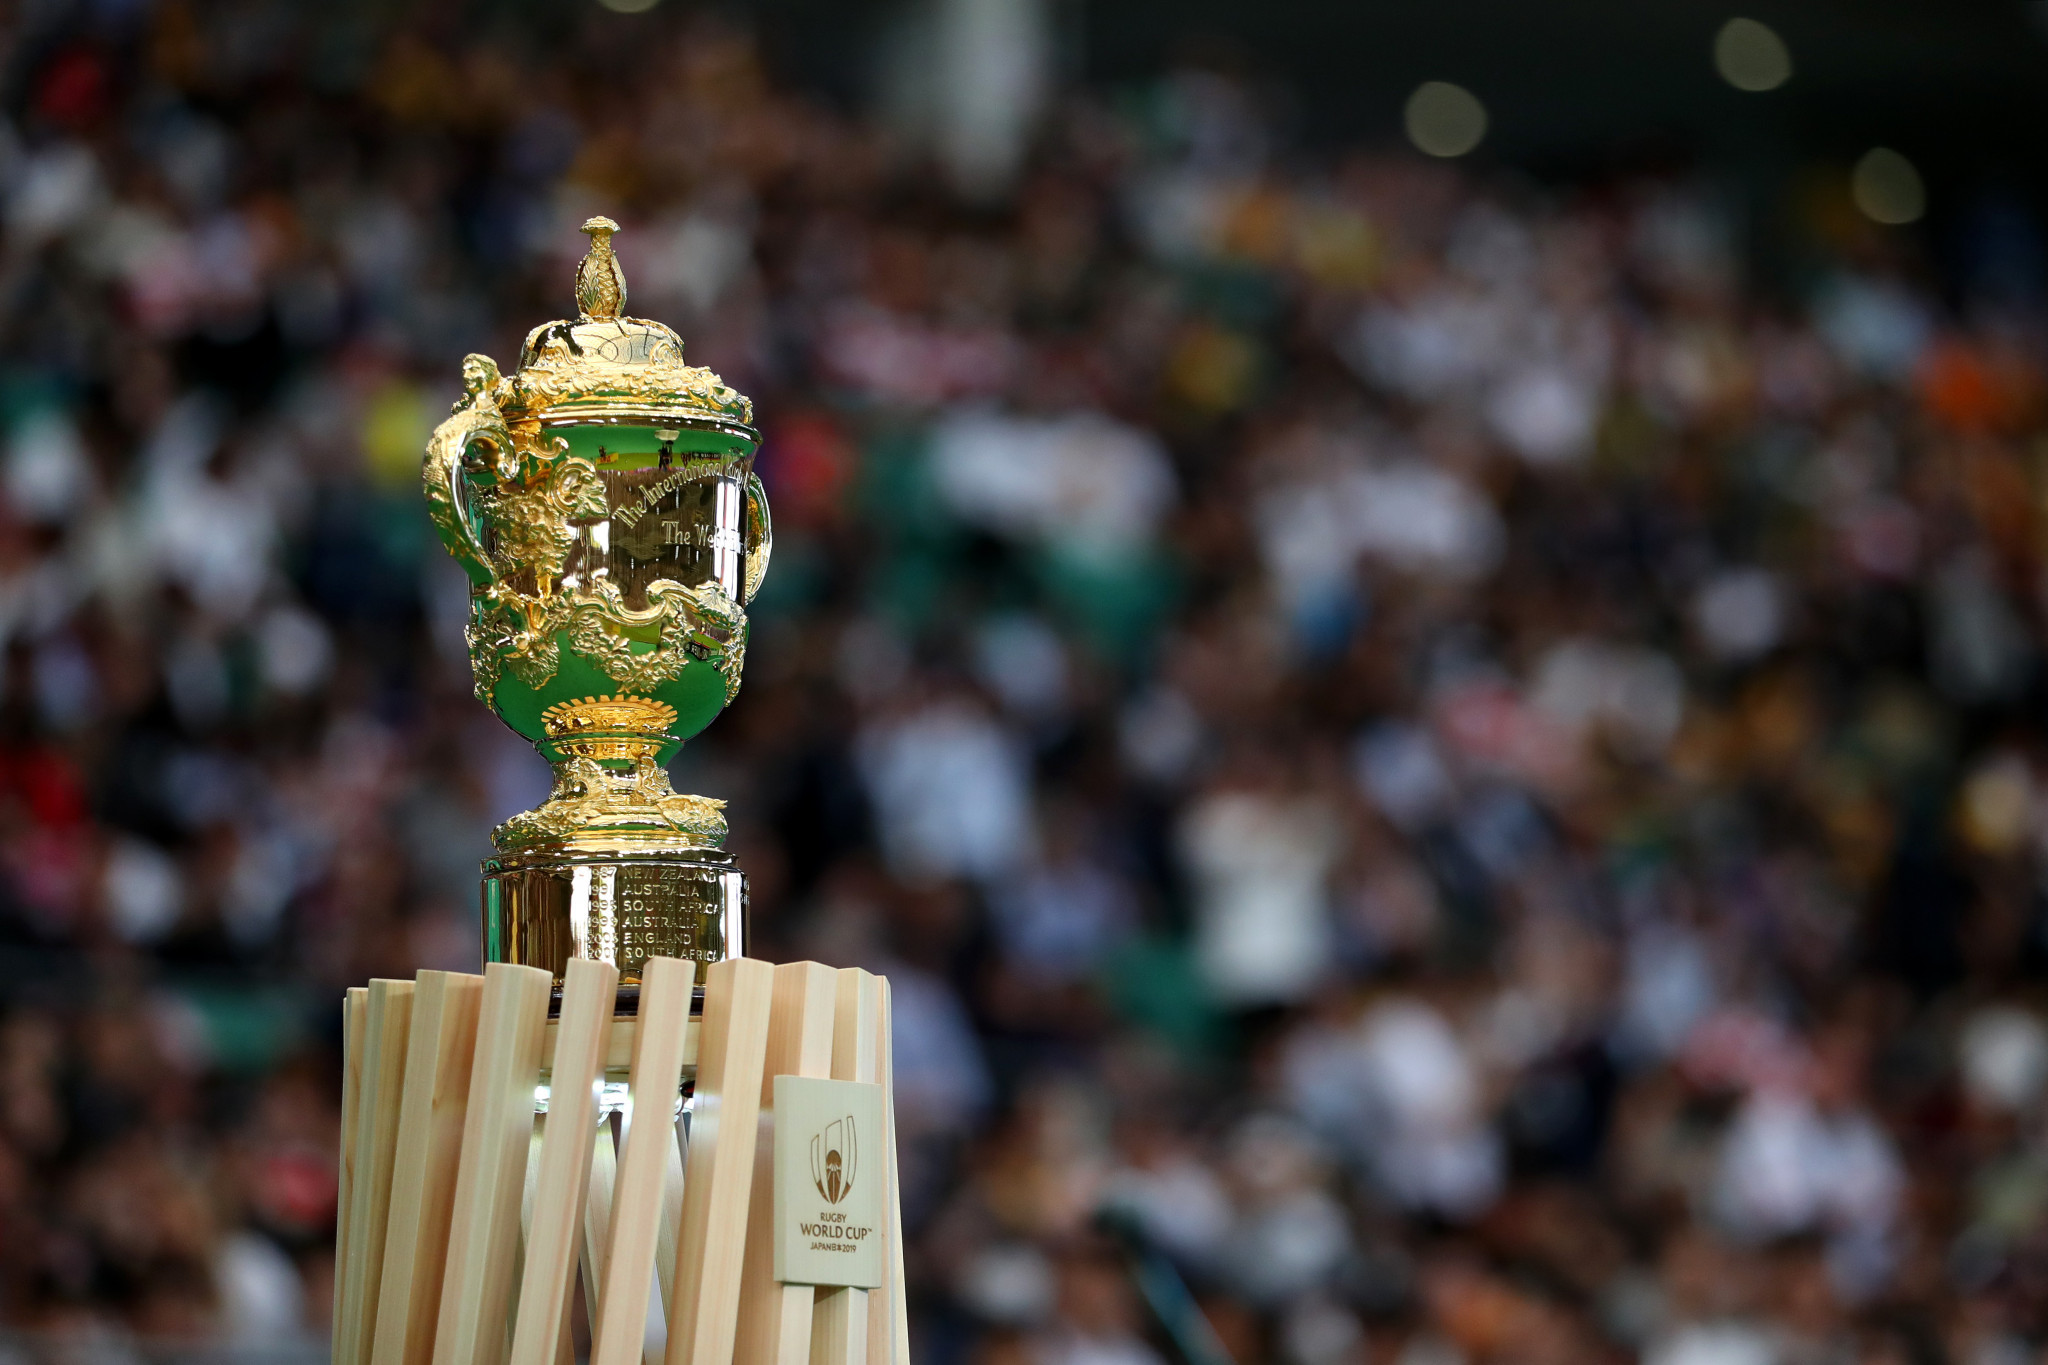 South Africa will be aiming to lift the Rugby World Cup trophy for the third time, while England are seeking their second title ©Getty Images